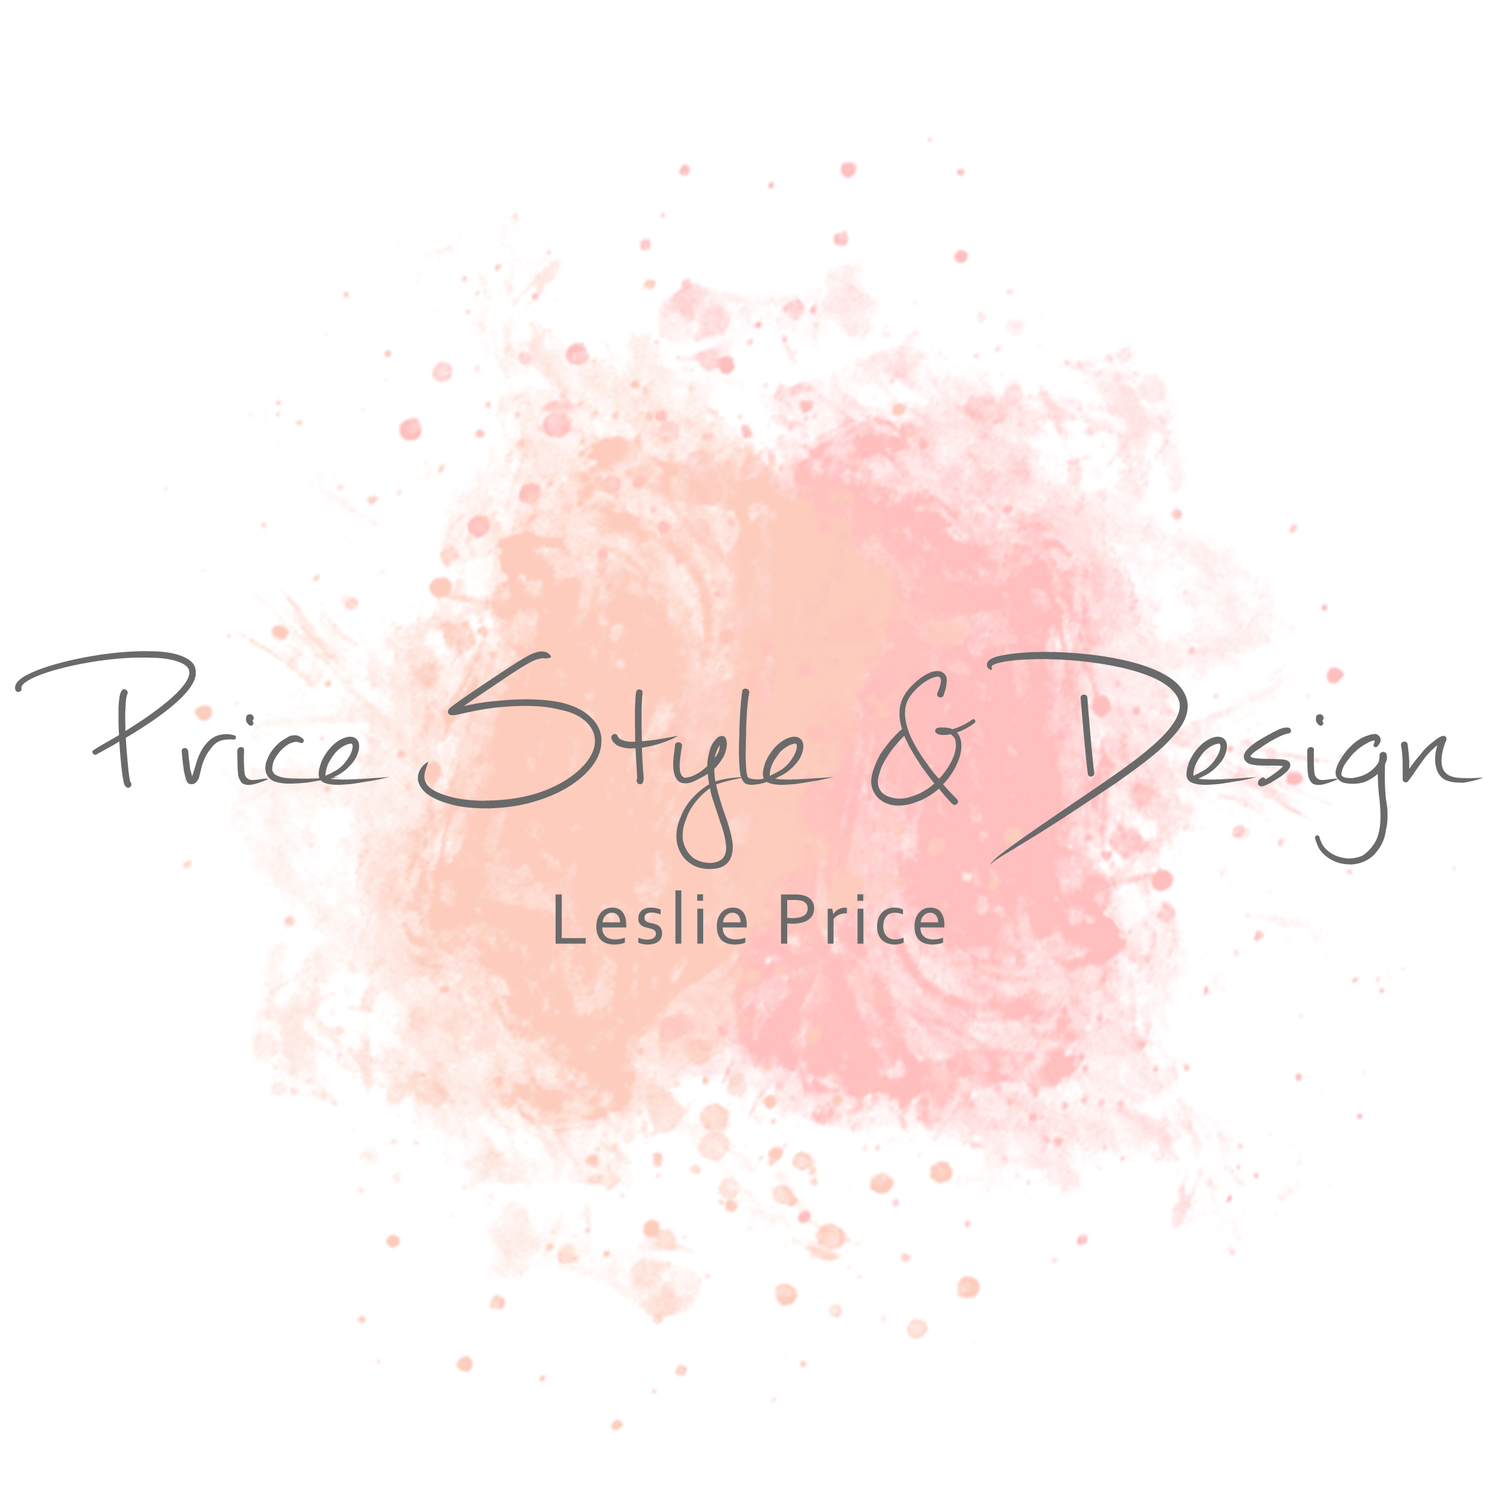 Price Style and Design